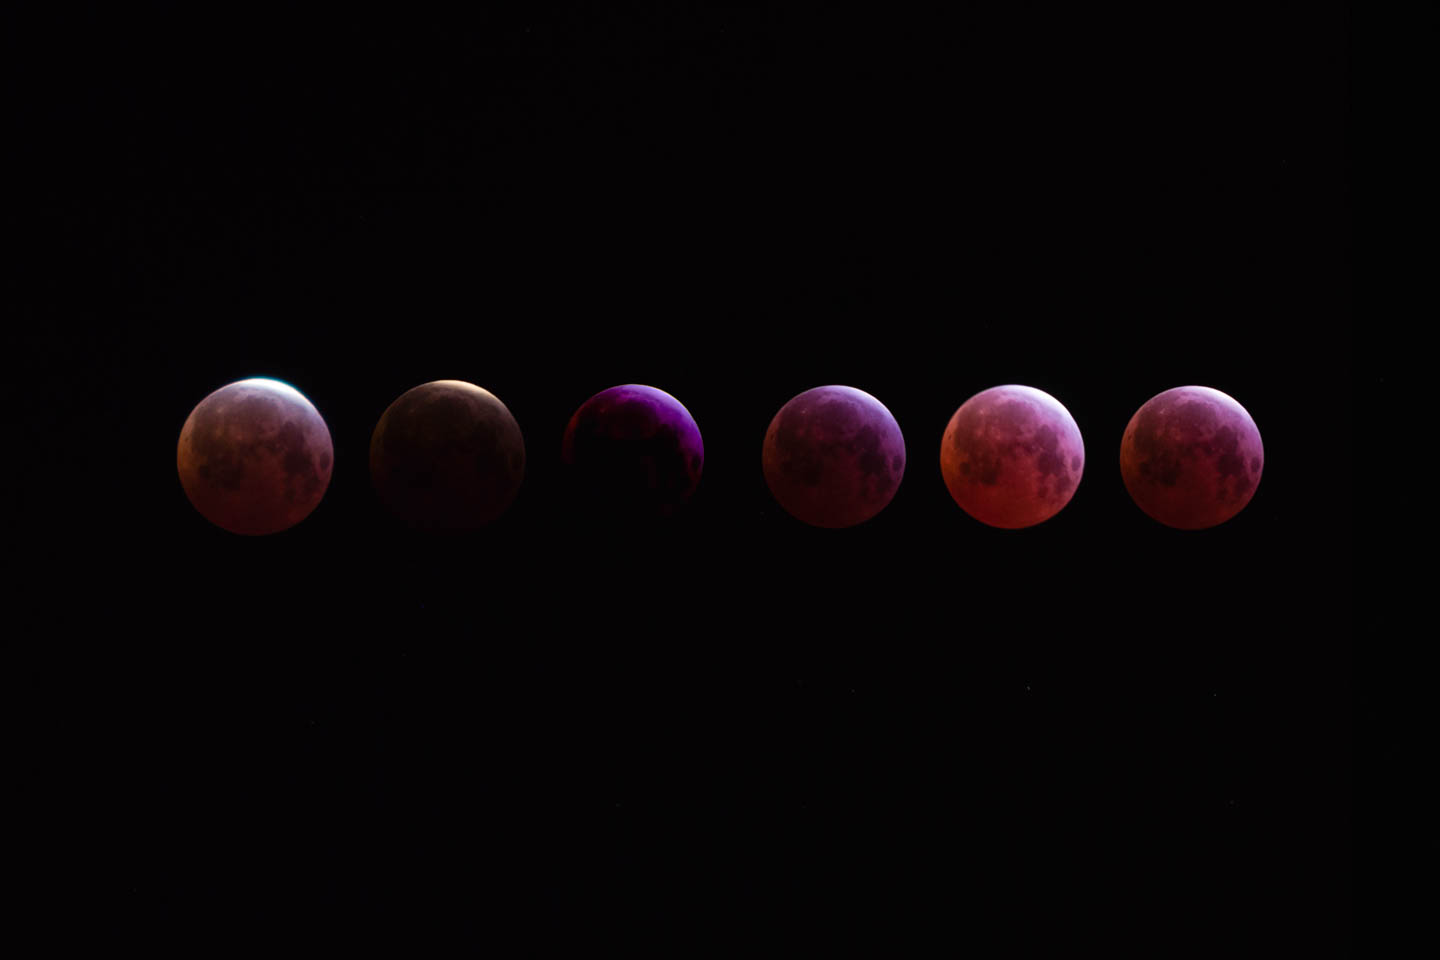 Several stages of the full lunar eclipse with red moon